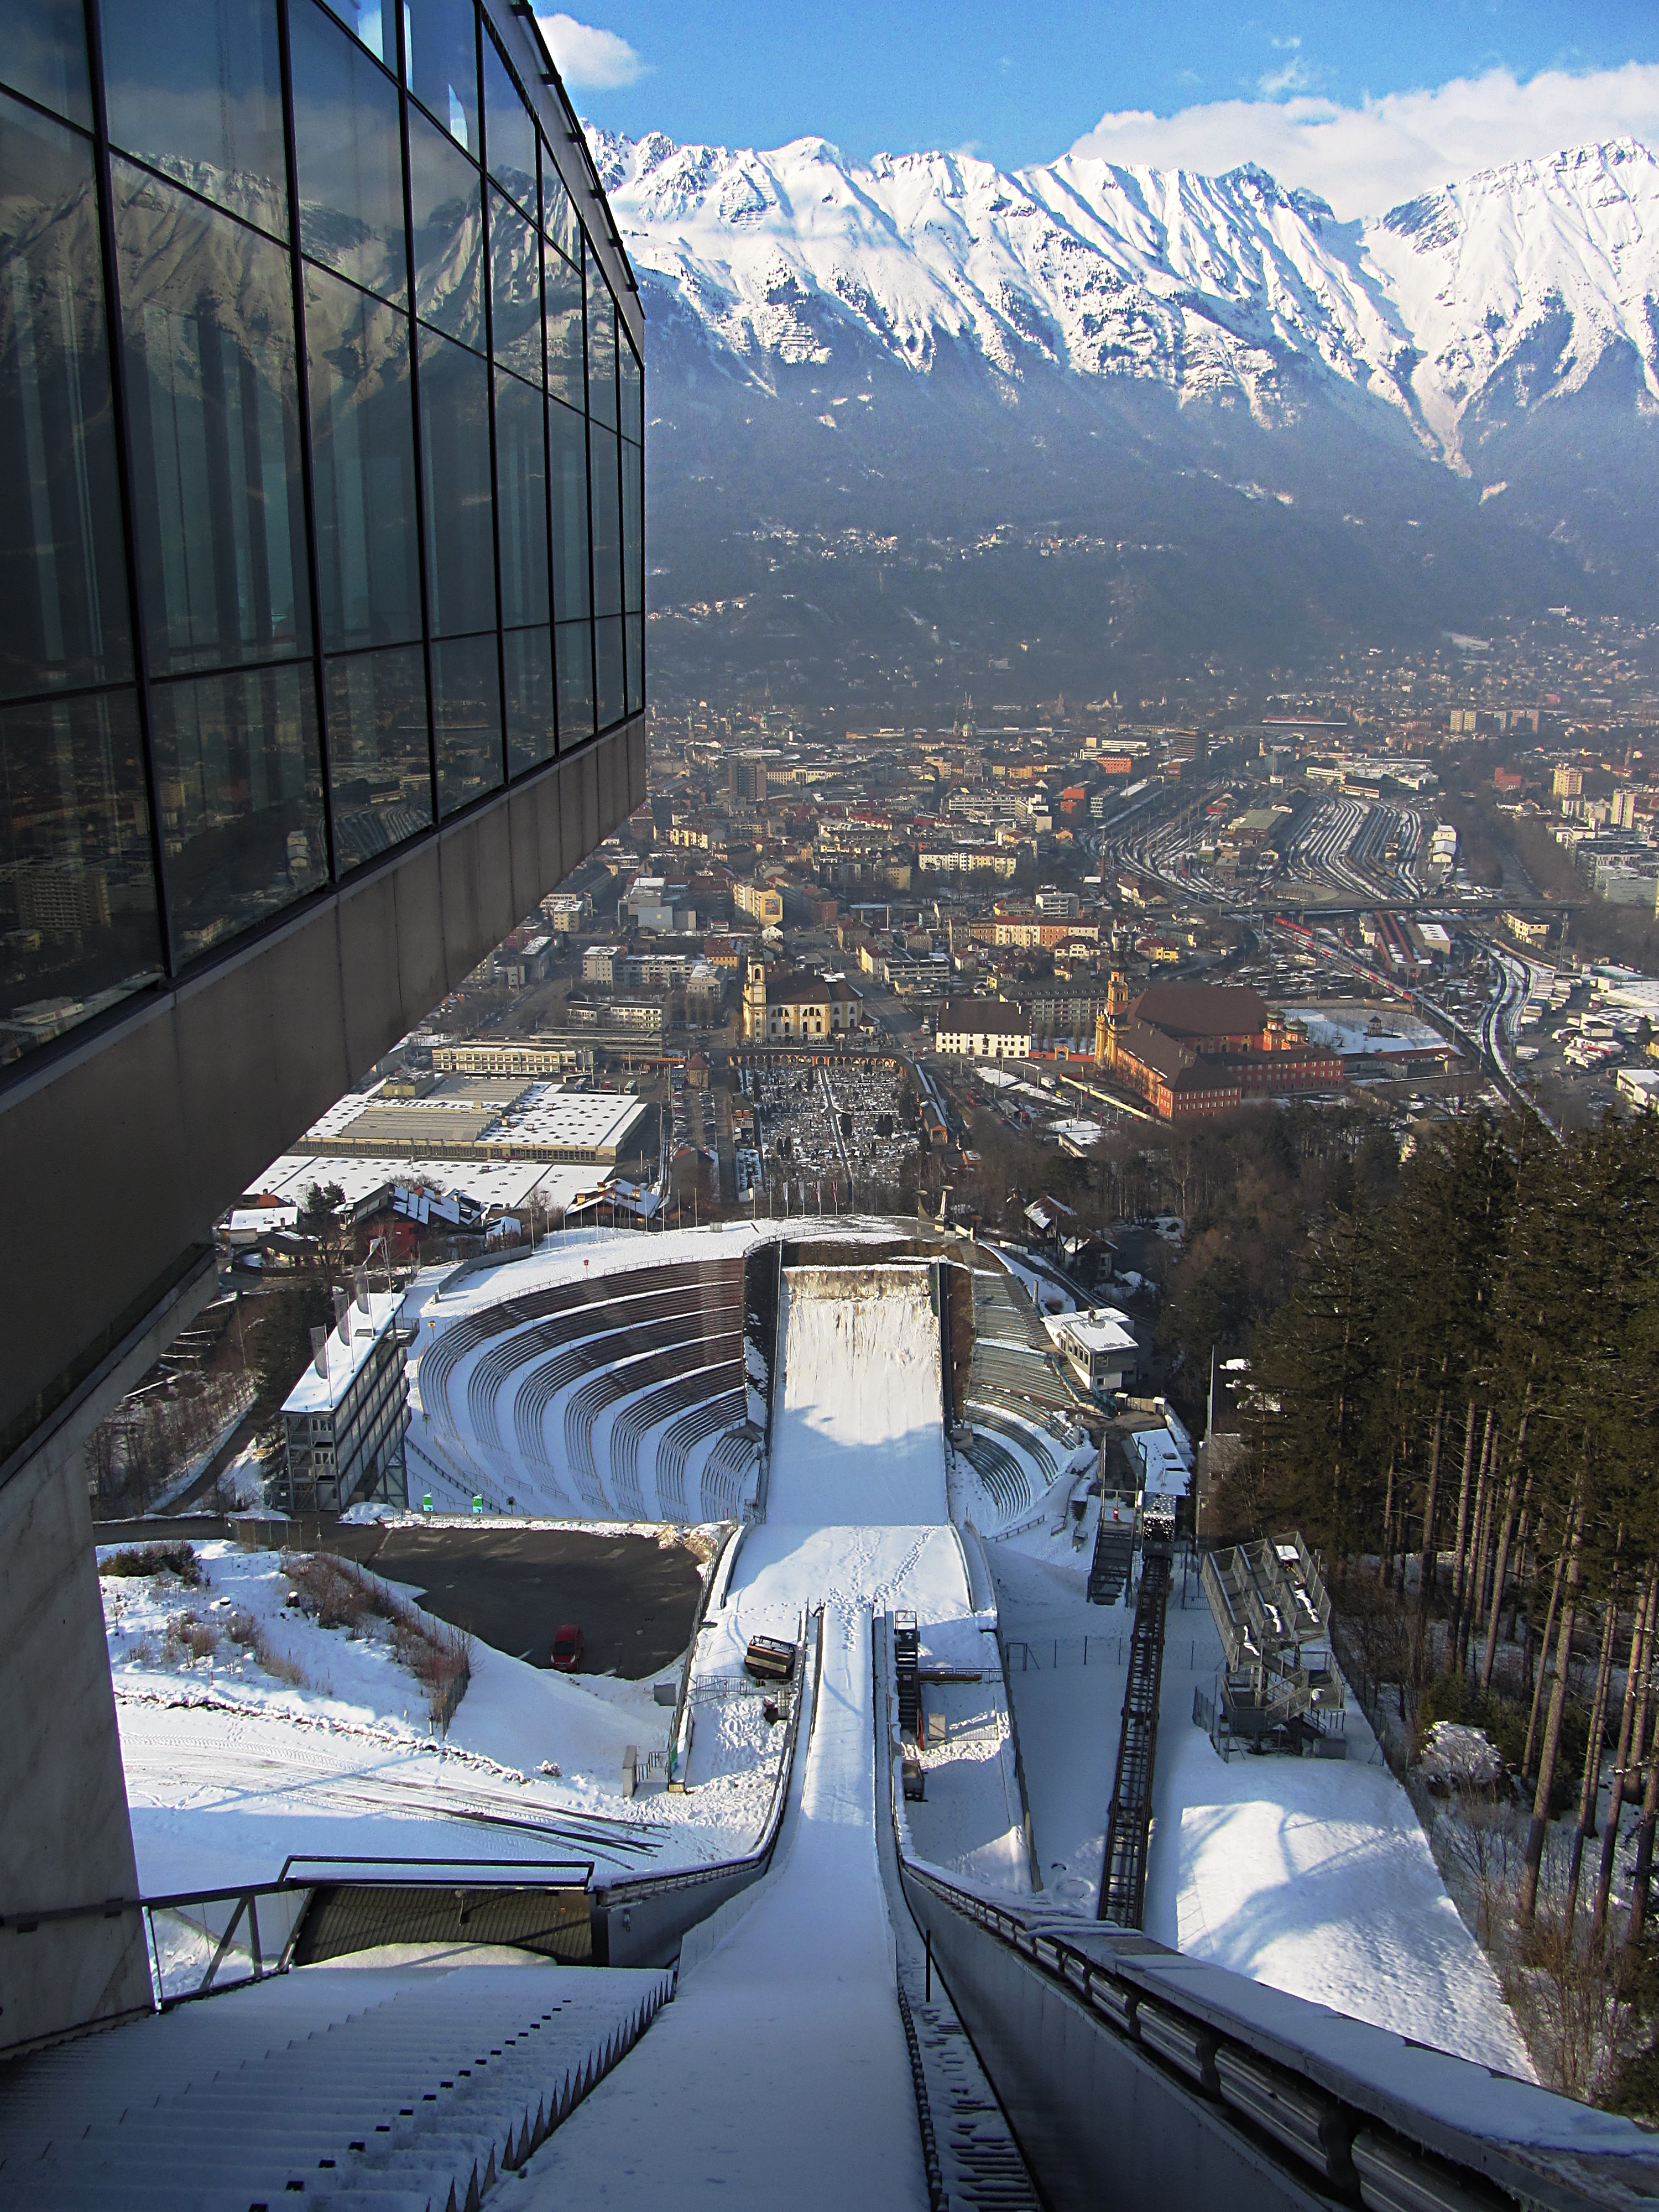 Zb Travel Innsbruck Nov 30 Mike Yardley News And Travel